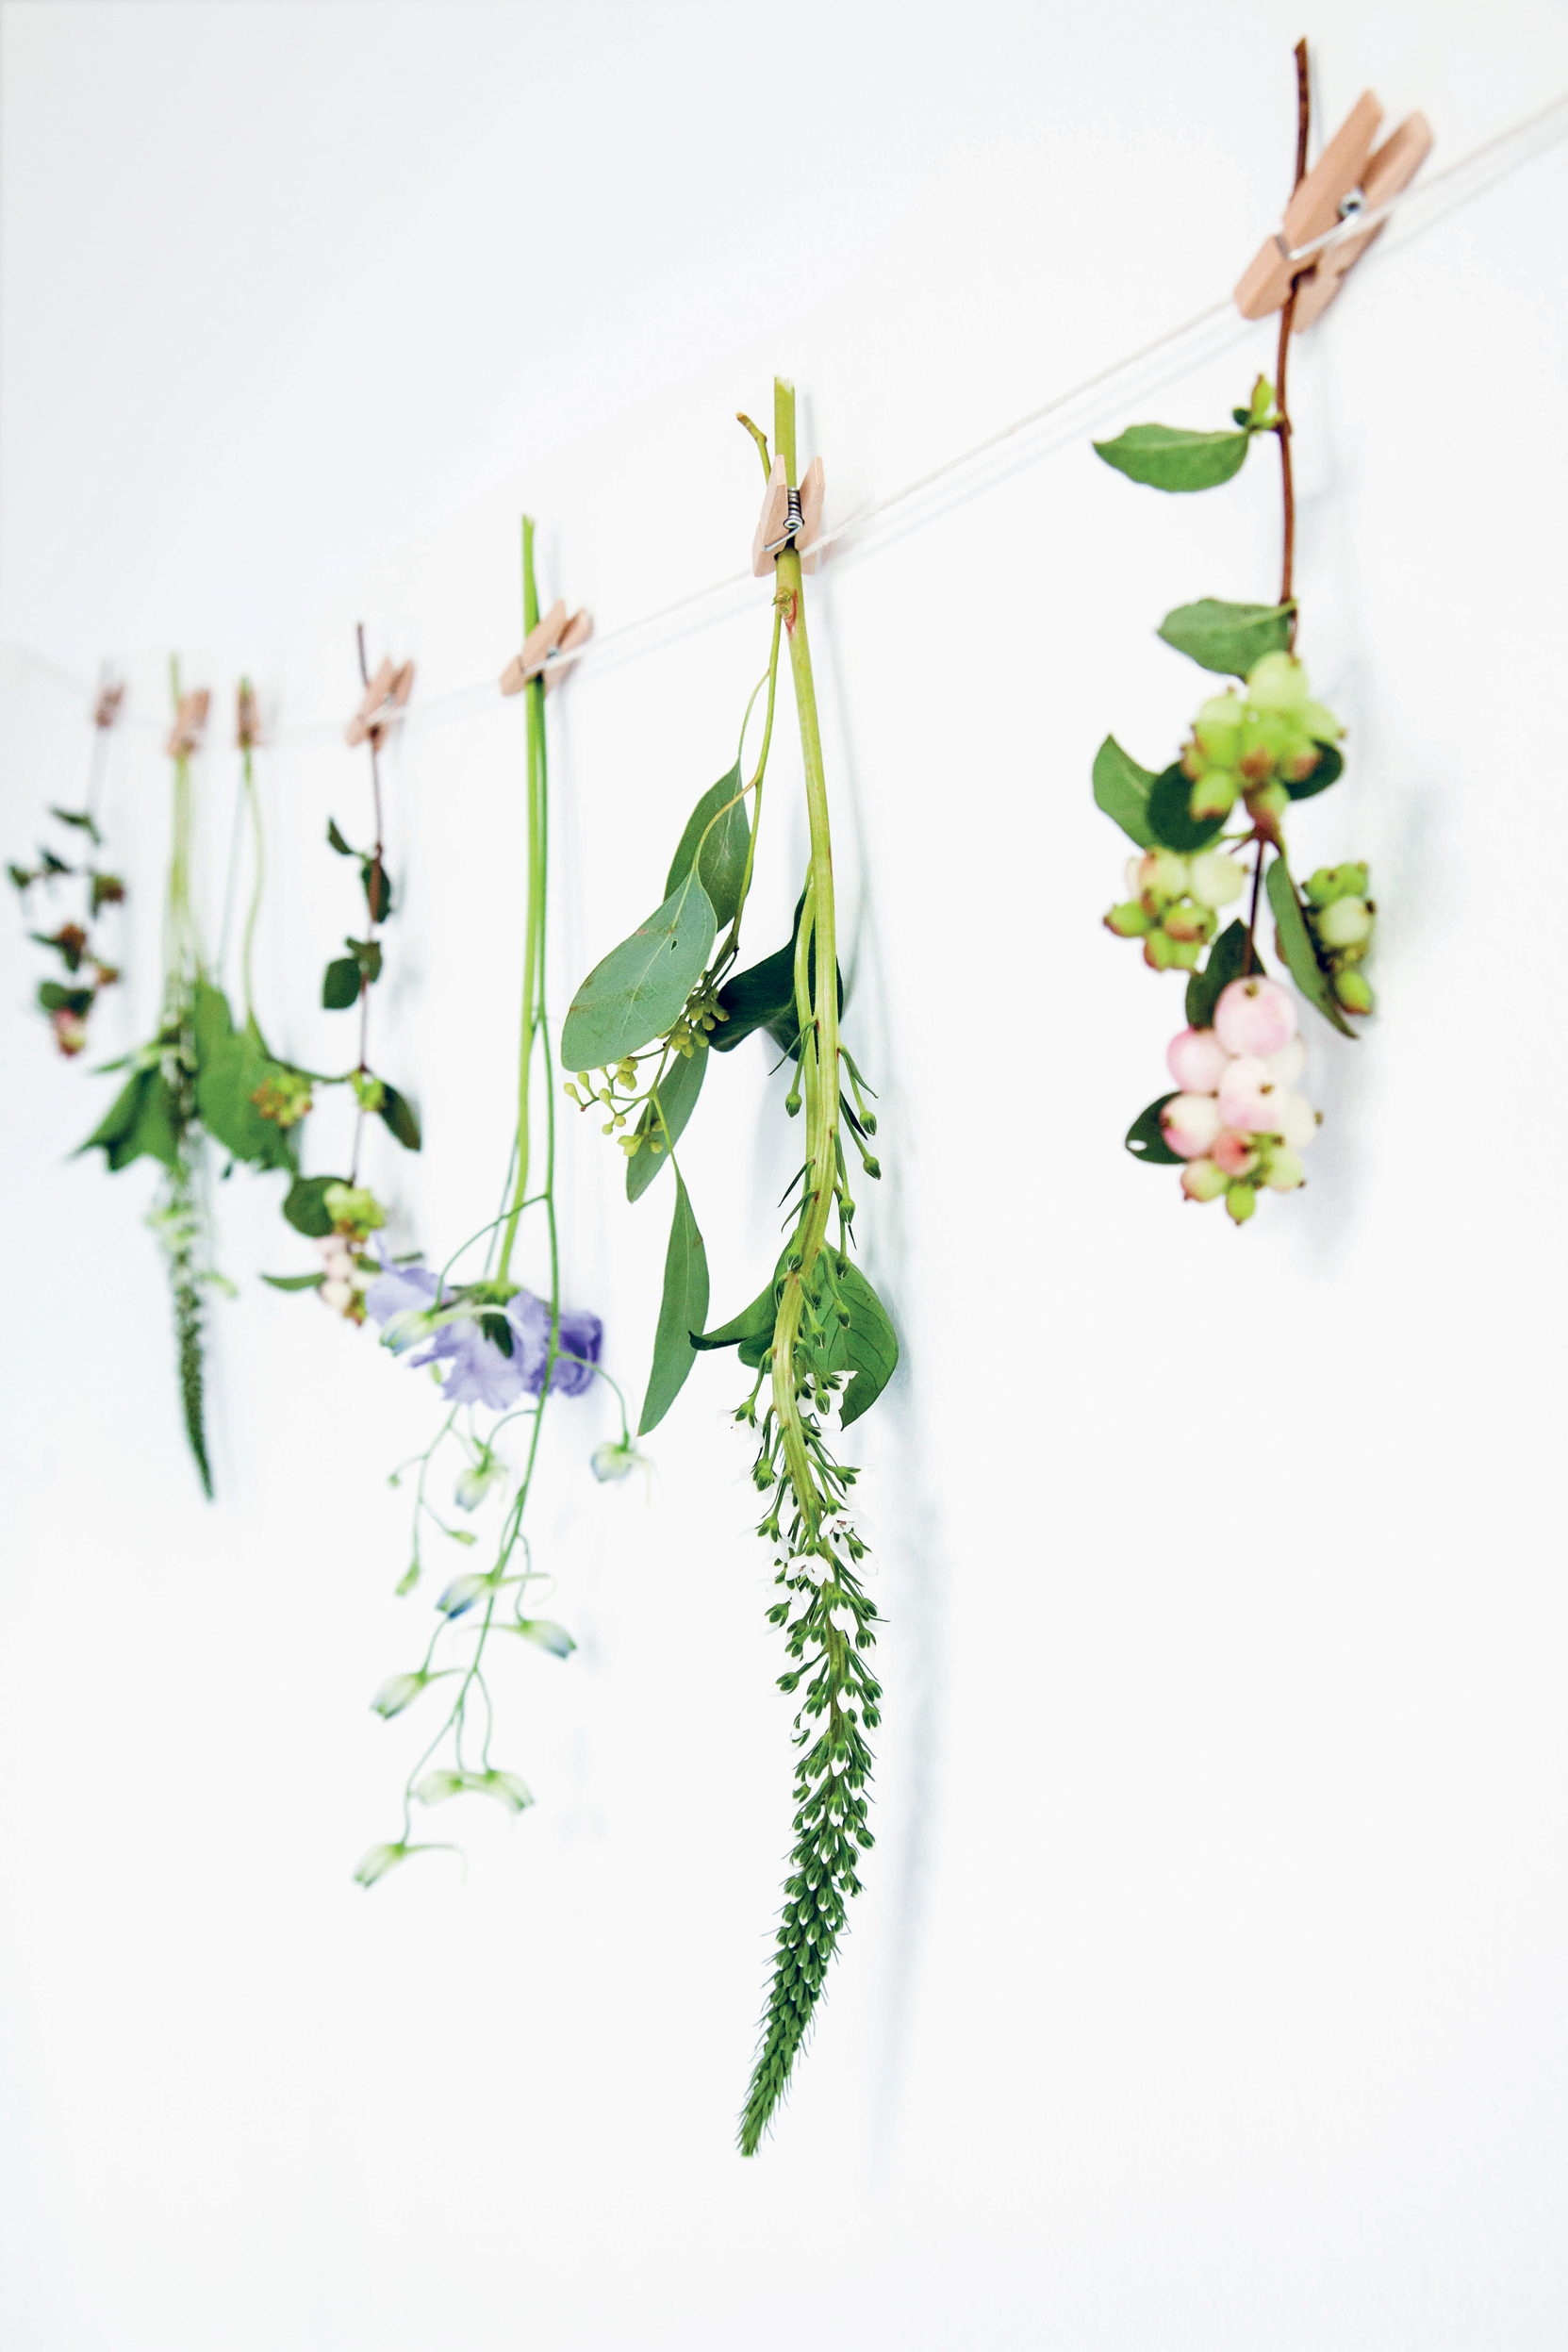 A line of cotton string tacked on a wall is hung with small sprigs of leaves, flowers, berries and pods attached by miniature clothes pegs (Decorate For A Party/Jacqui Small/PA)